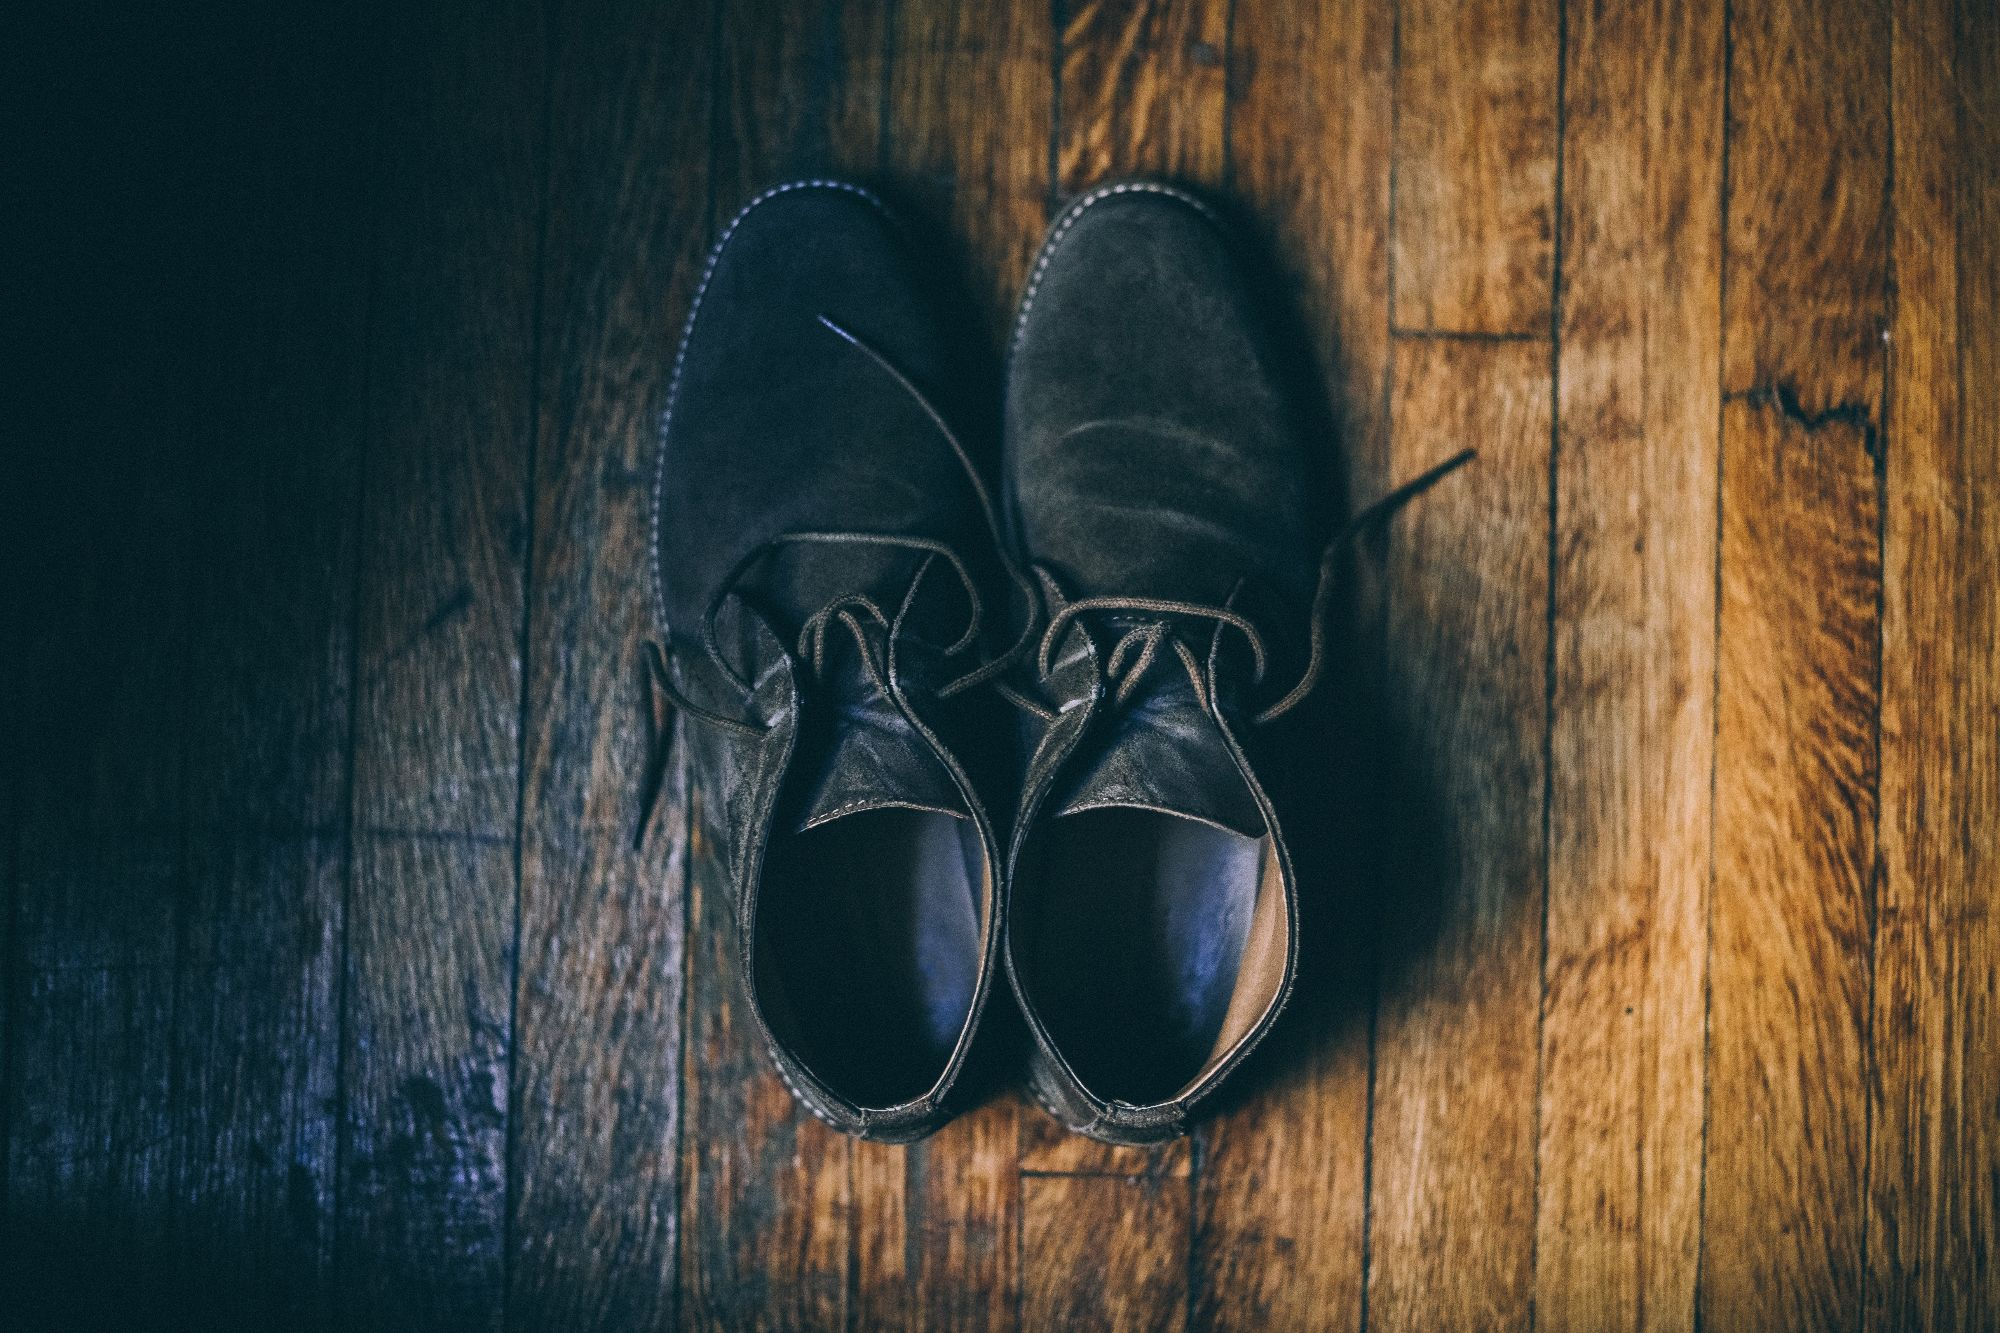 Aerial shot of a pair of shoes on a wooden floor